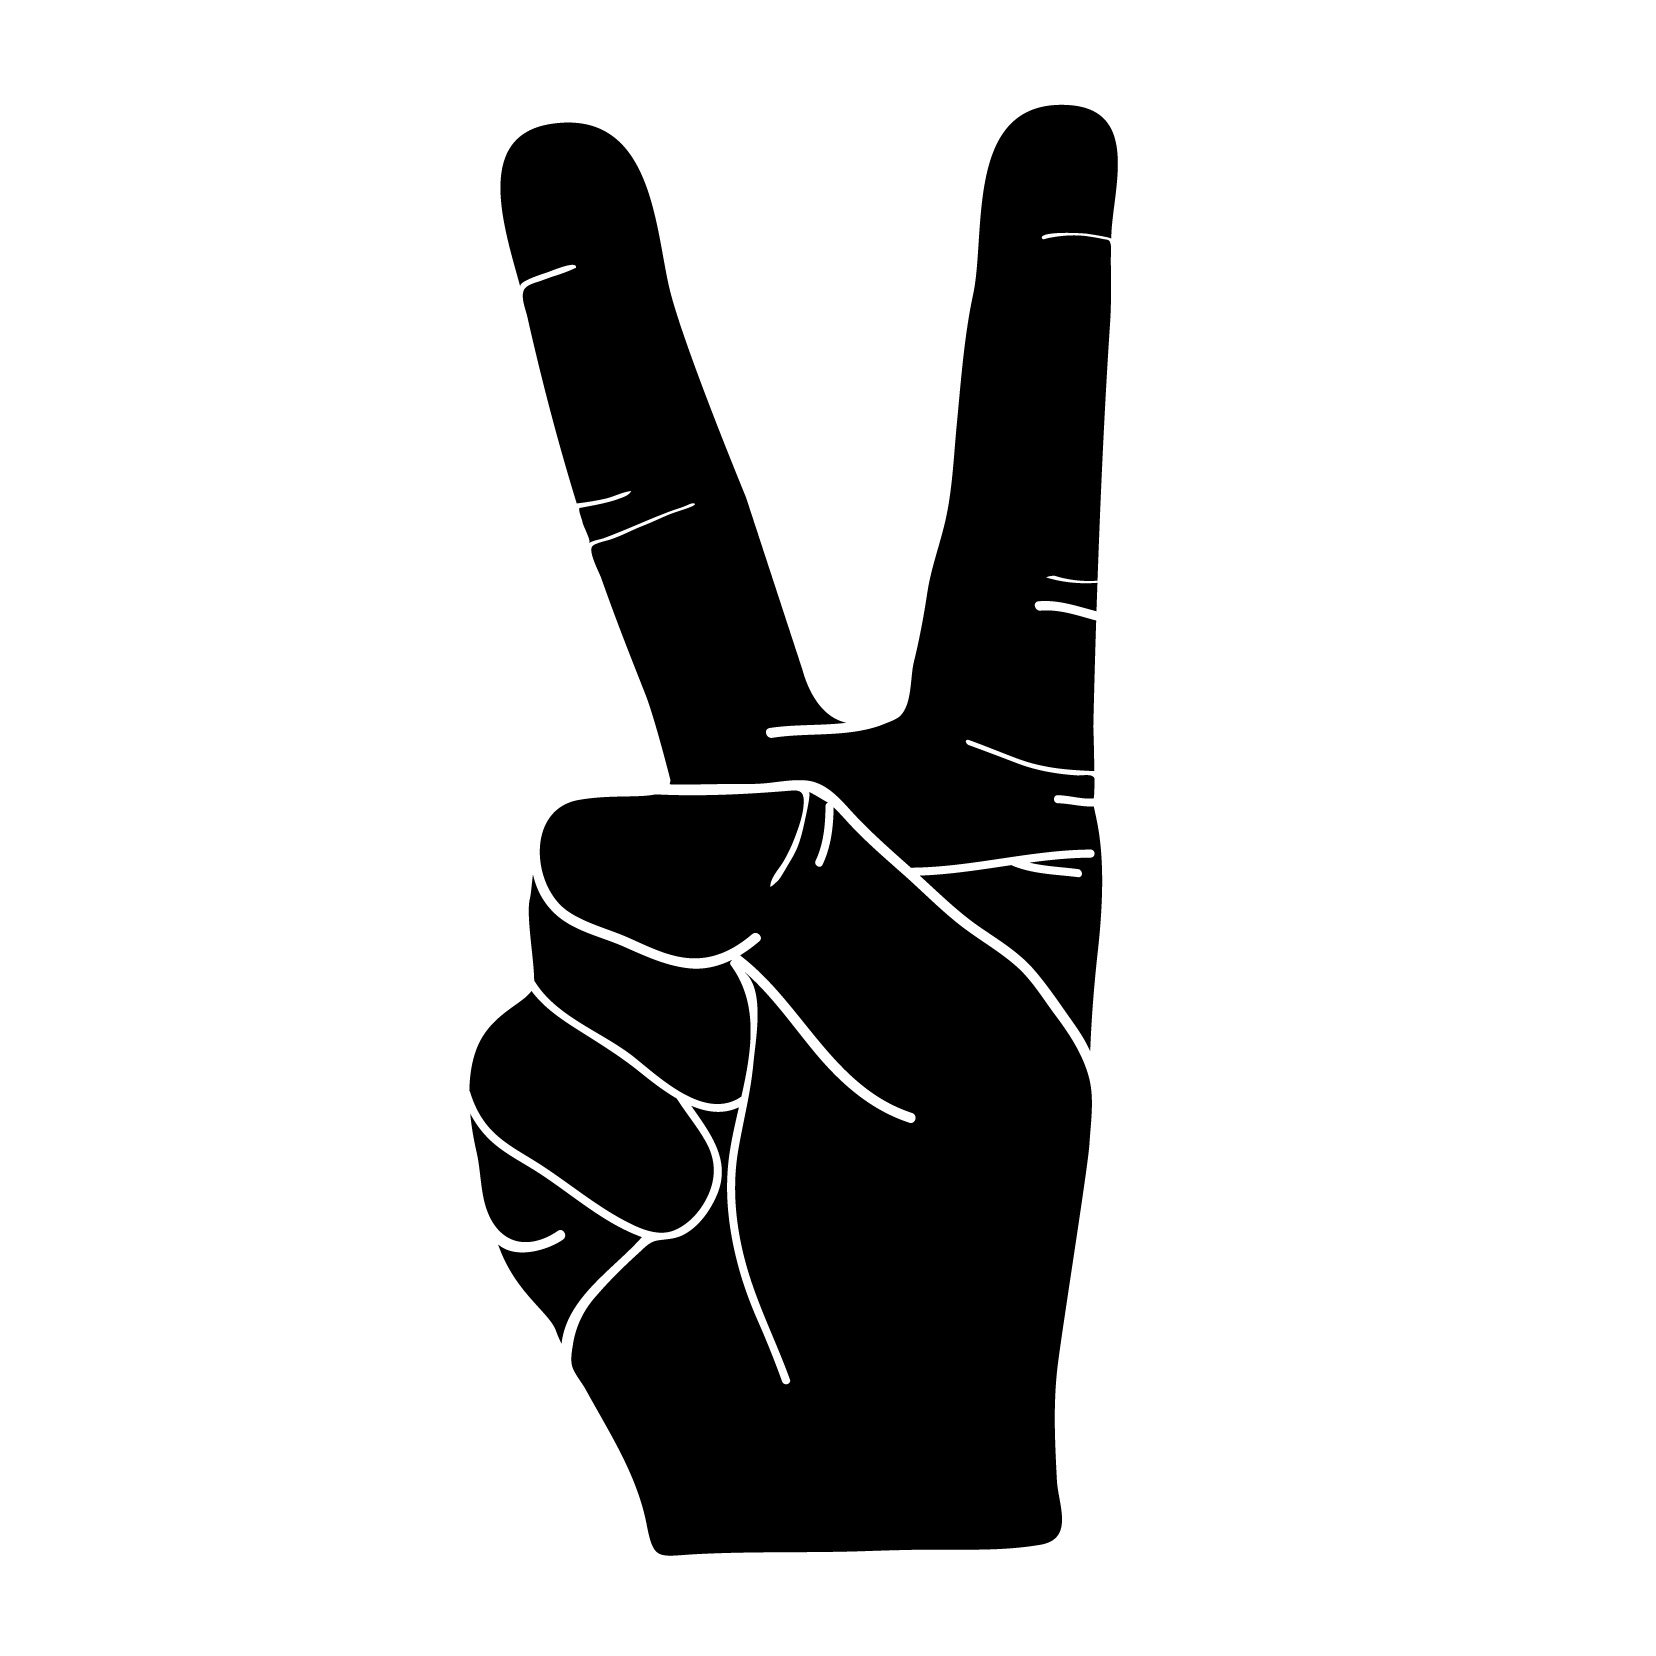 Peace Hand Sign Silhouette - Small - Smartphones, Tablets, and Computers - Vinyl Wall Art Decal for Homes, Offices, Kids Rooms, Nurseries, Schools, High Schools, Colleges, Universities, Interior Designers, Architects, Remodelers